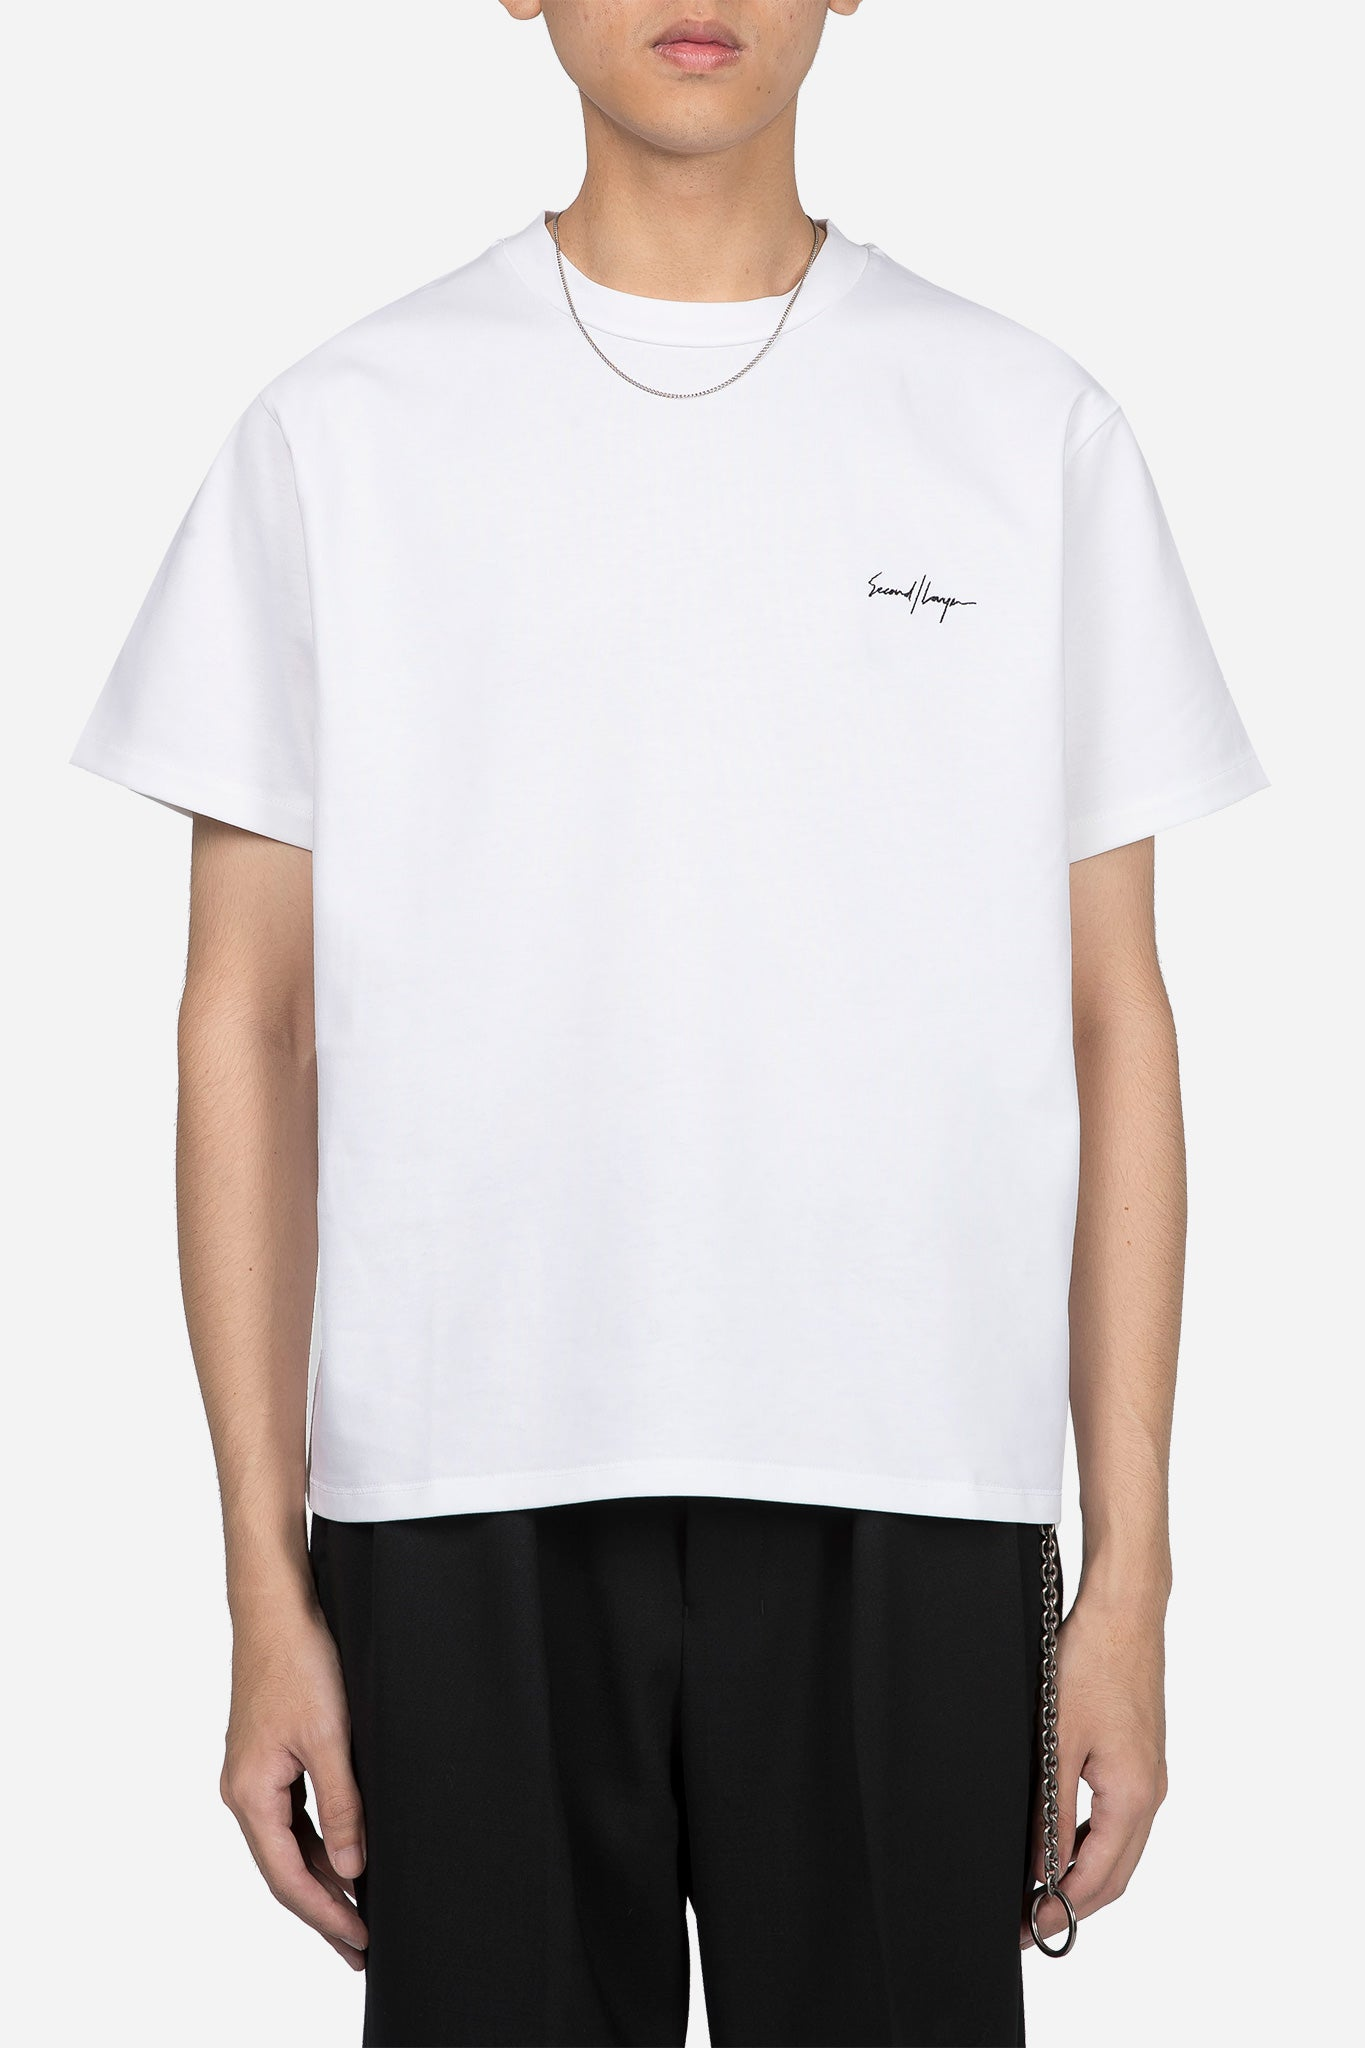 Structured Jersey Cropped T-shirt White